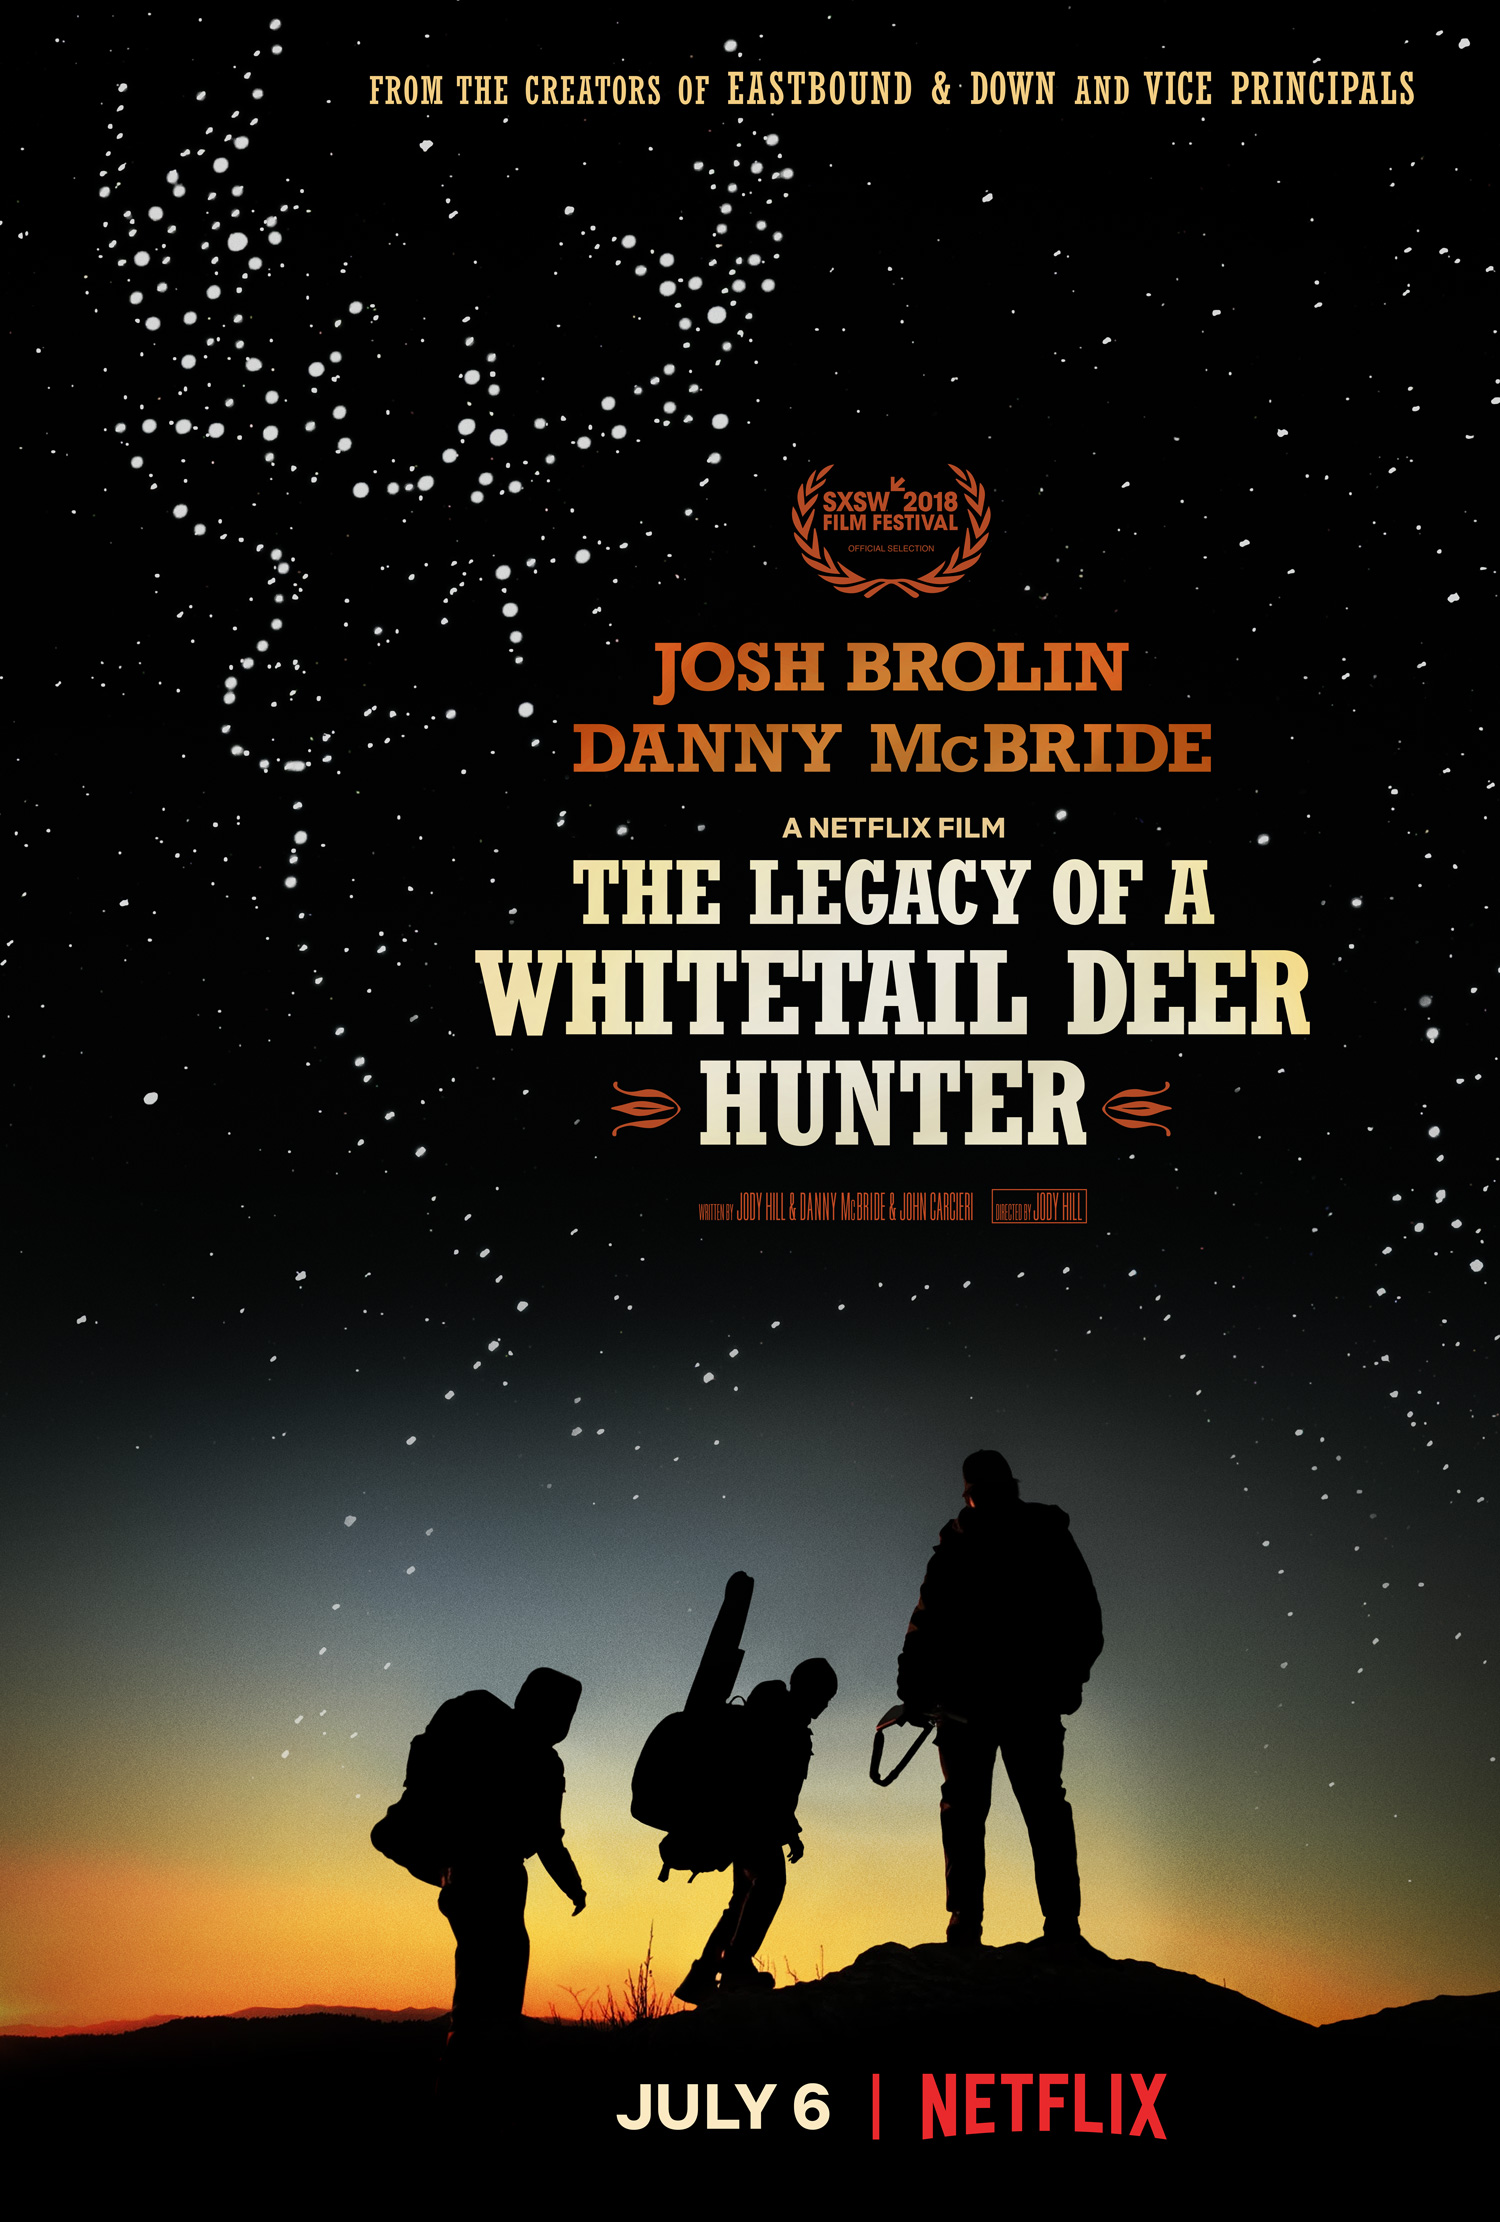 the-legacy-of-a-whitetail-deer-hunter-poster.jpg